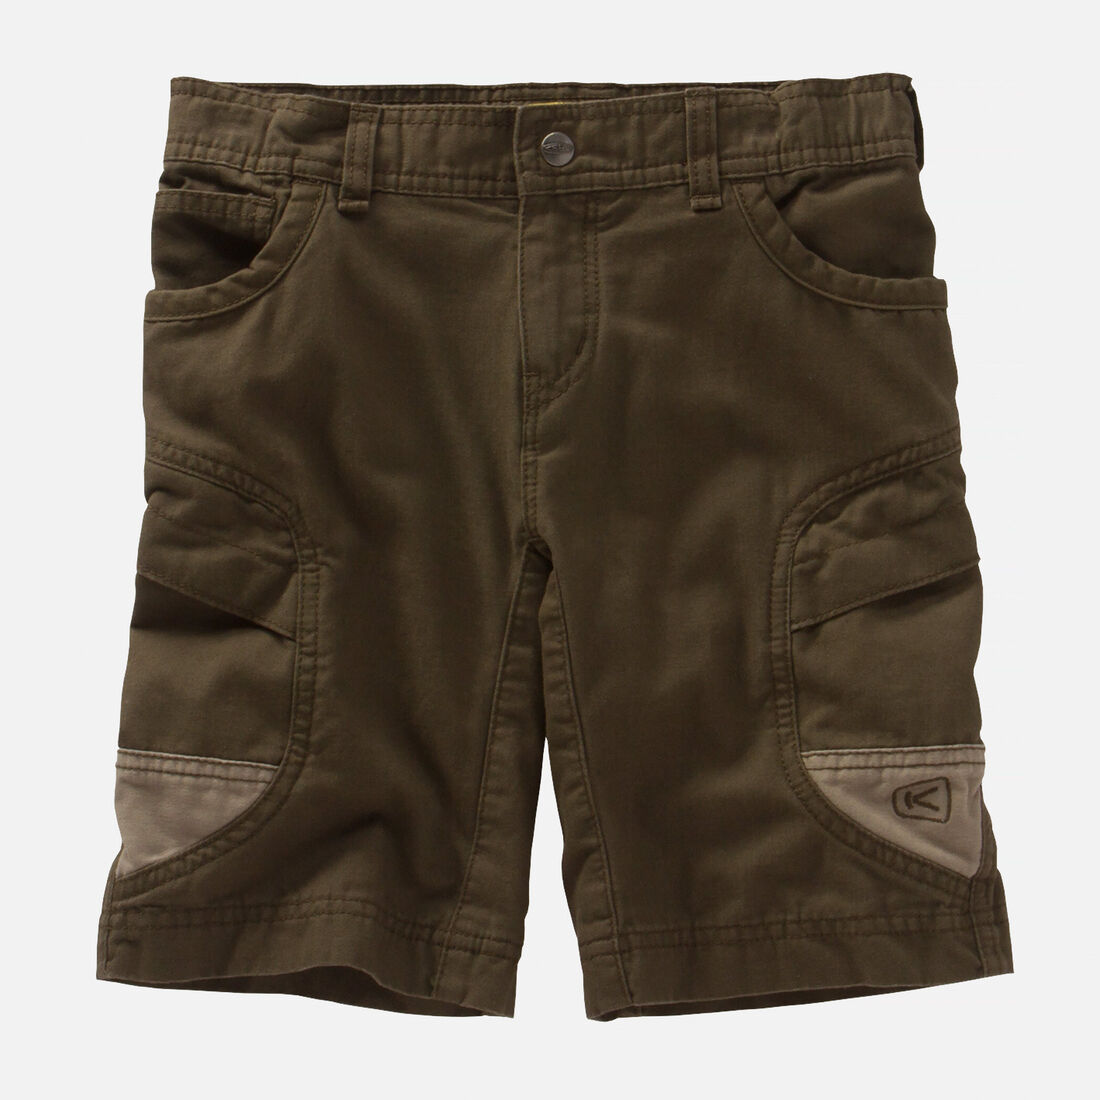 Kids' Newport Short in Olive Green/Khaki - large view.